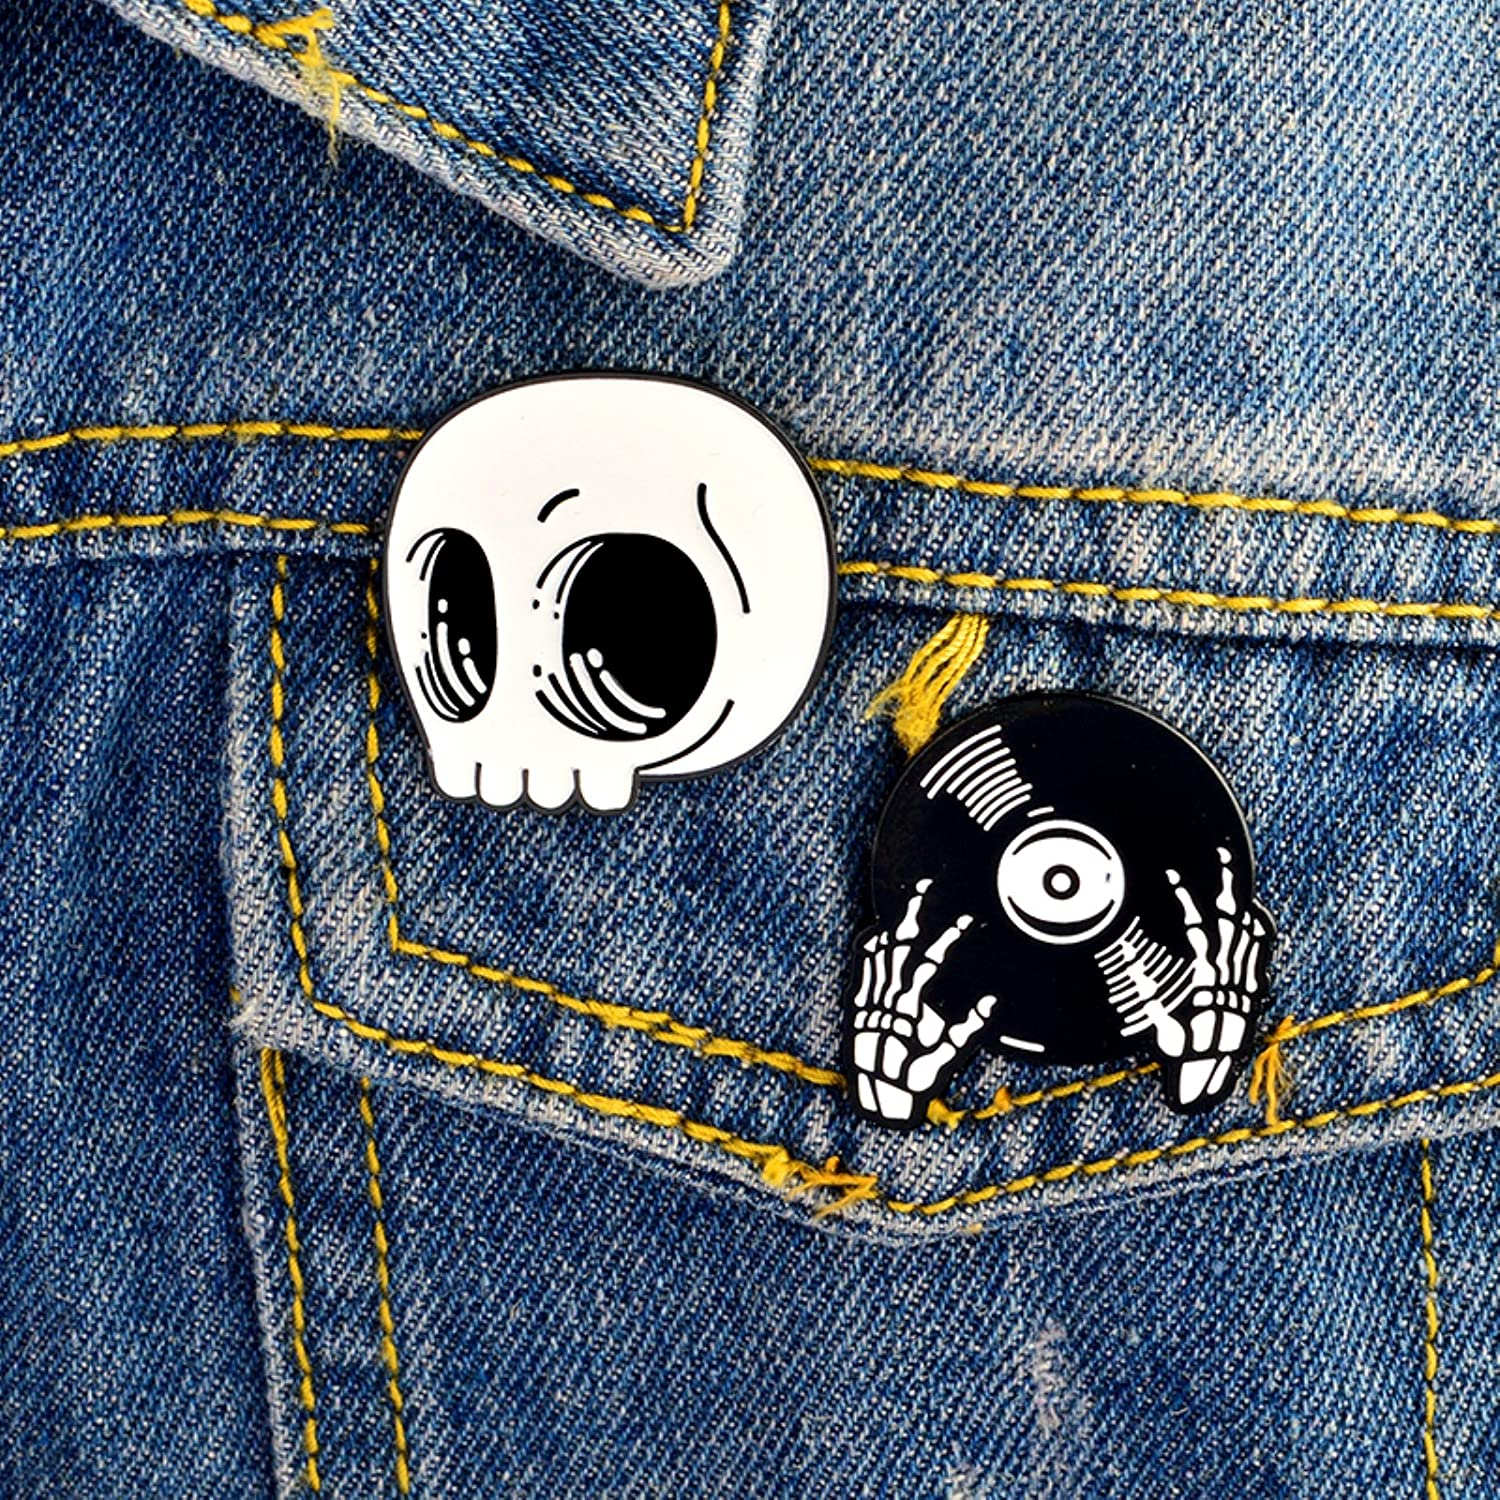 2pcs/Set Skeleton Record Hands Enamel Pin DJ Skull Brooch Jeans Pin Hat Buckle Shirt Badge Dark Punk Jewelry Gift for Friends ptk12